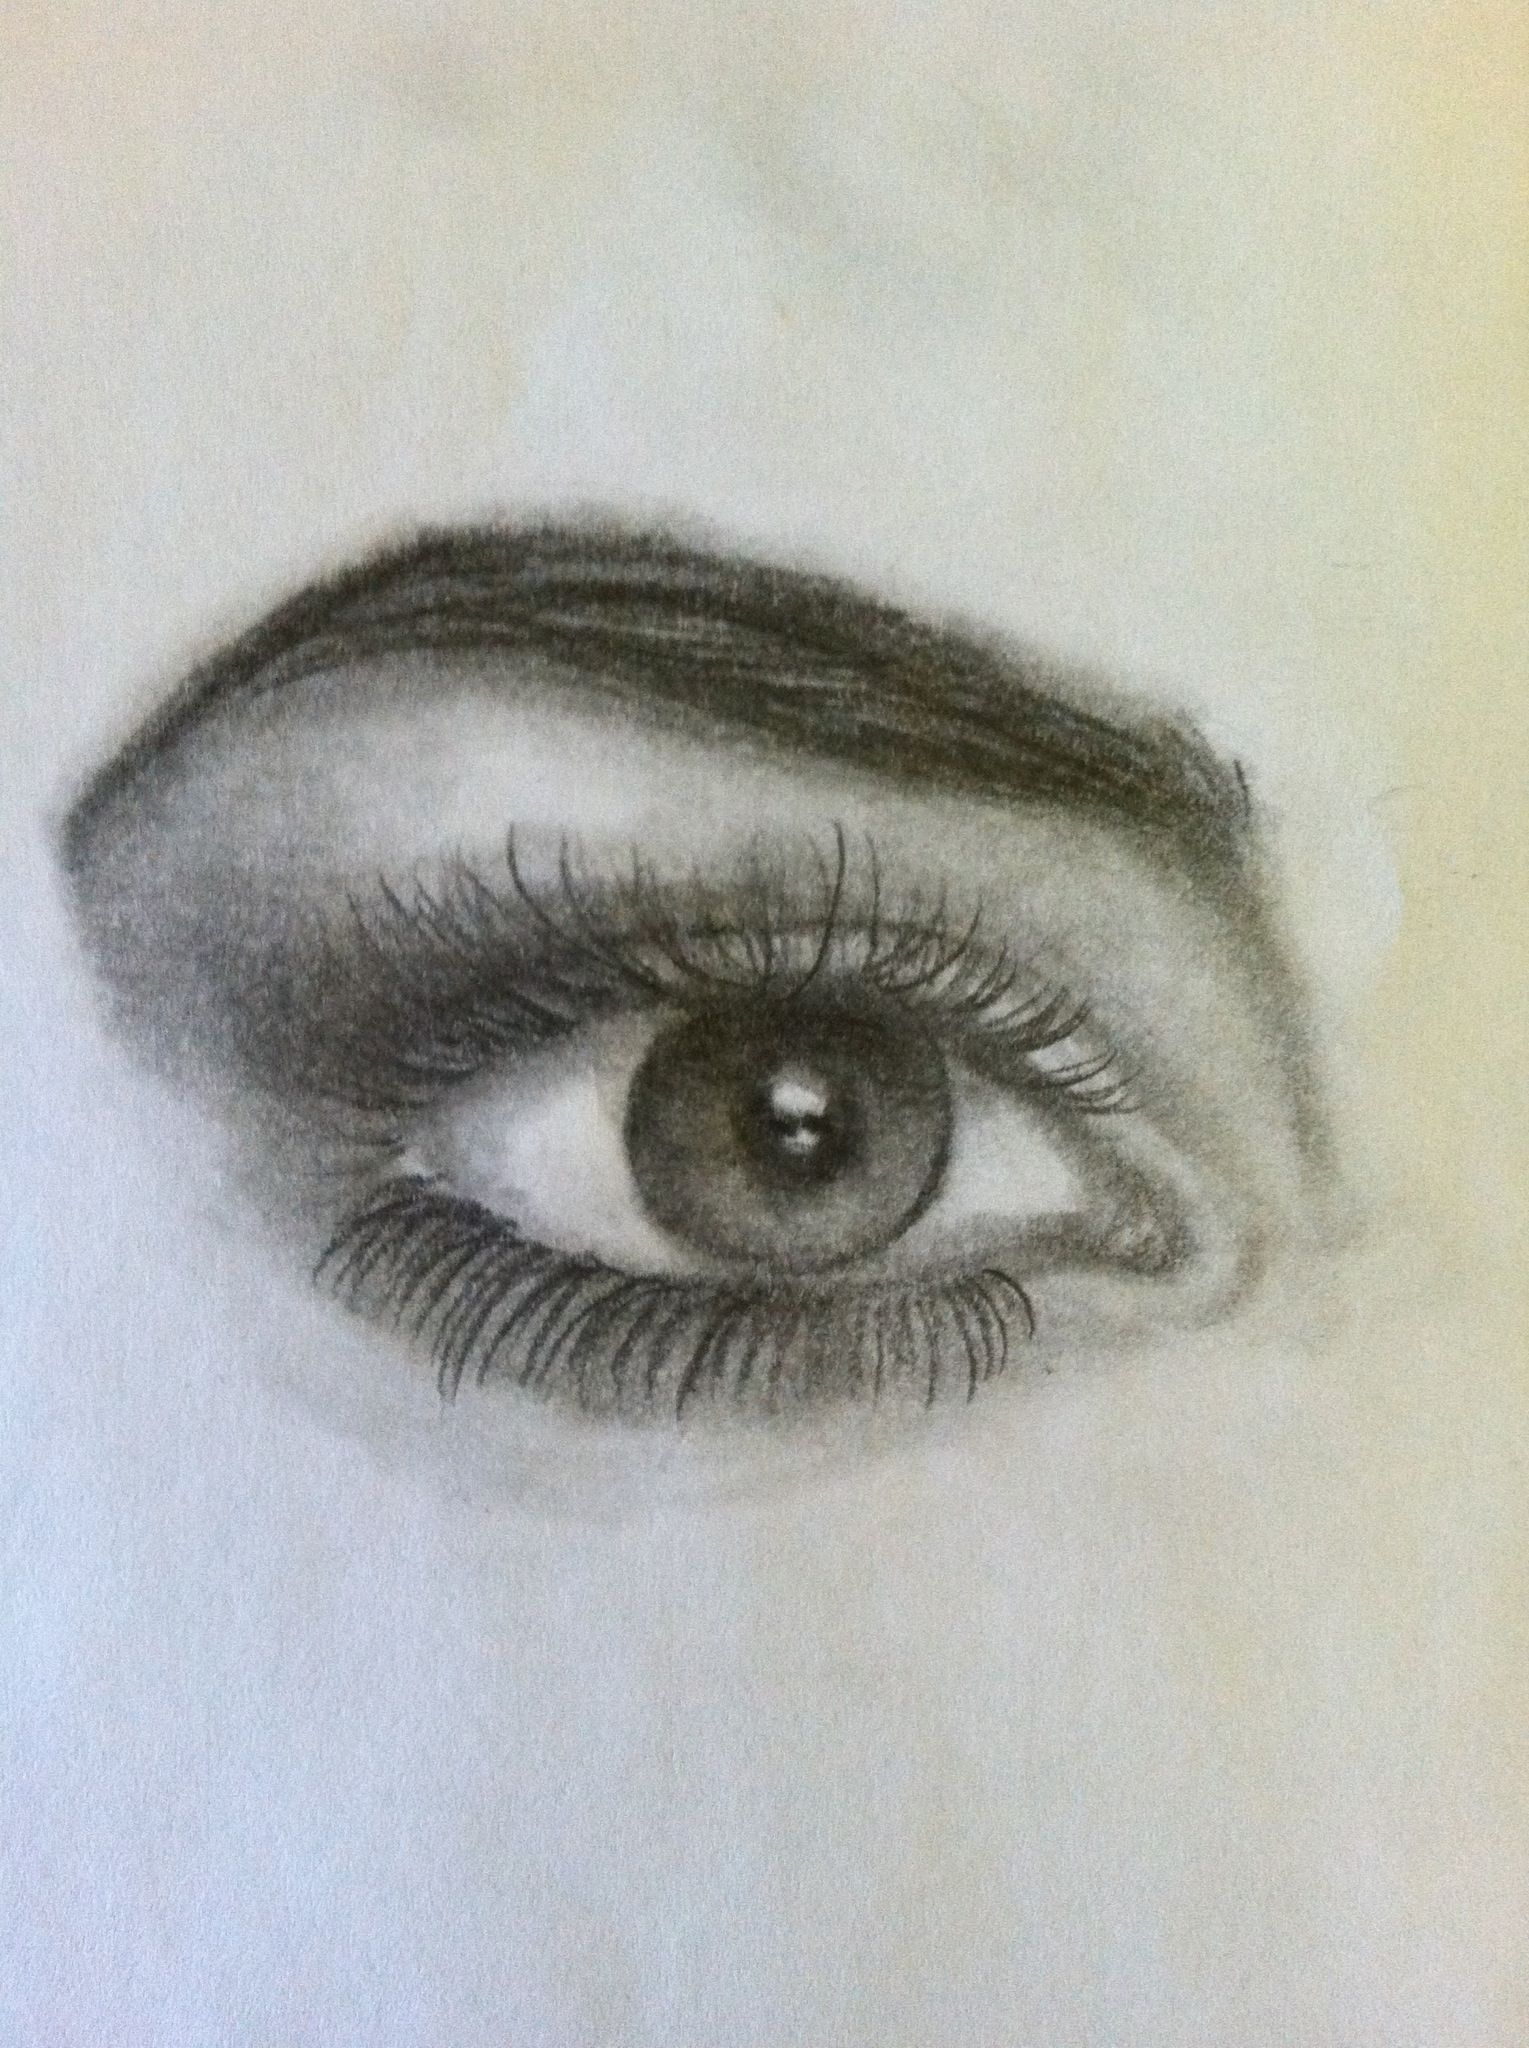 eyebrow shading drawing. how to draw eyes, at the end of guide on eyes it shows eyebrow shading drawing h